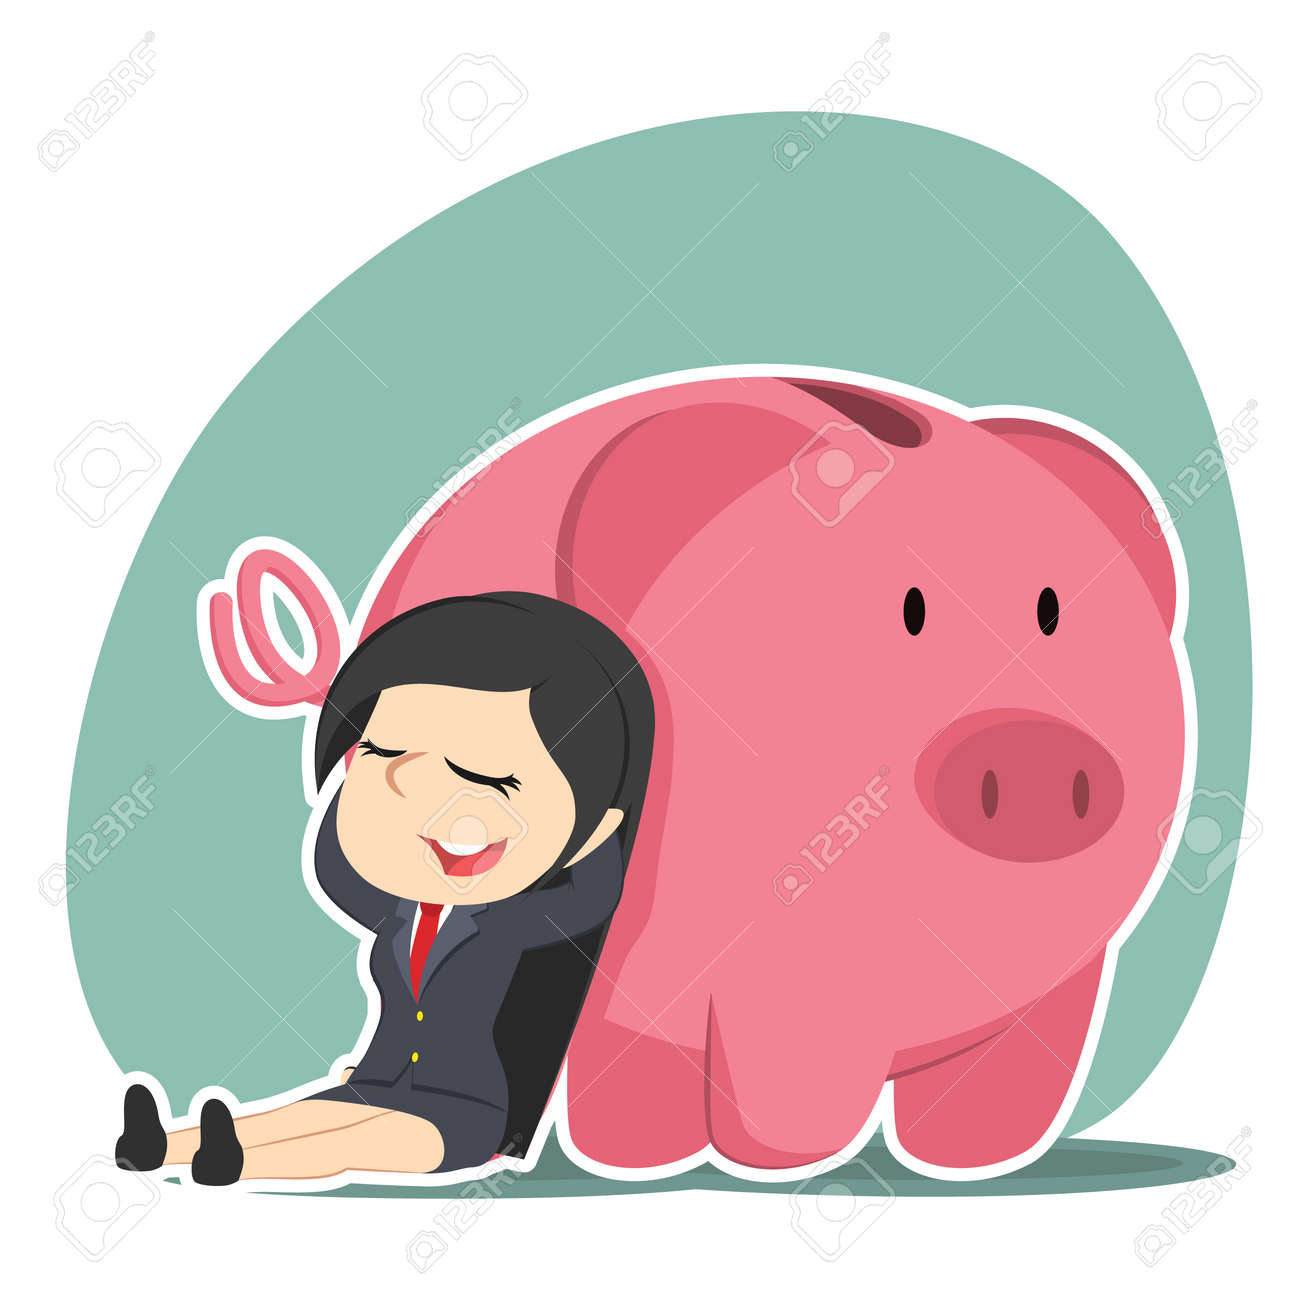 businesswoman relaxing beside piggy bank royalty free cliparts